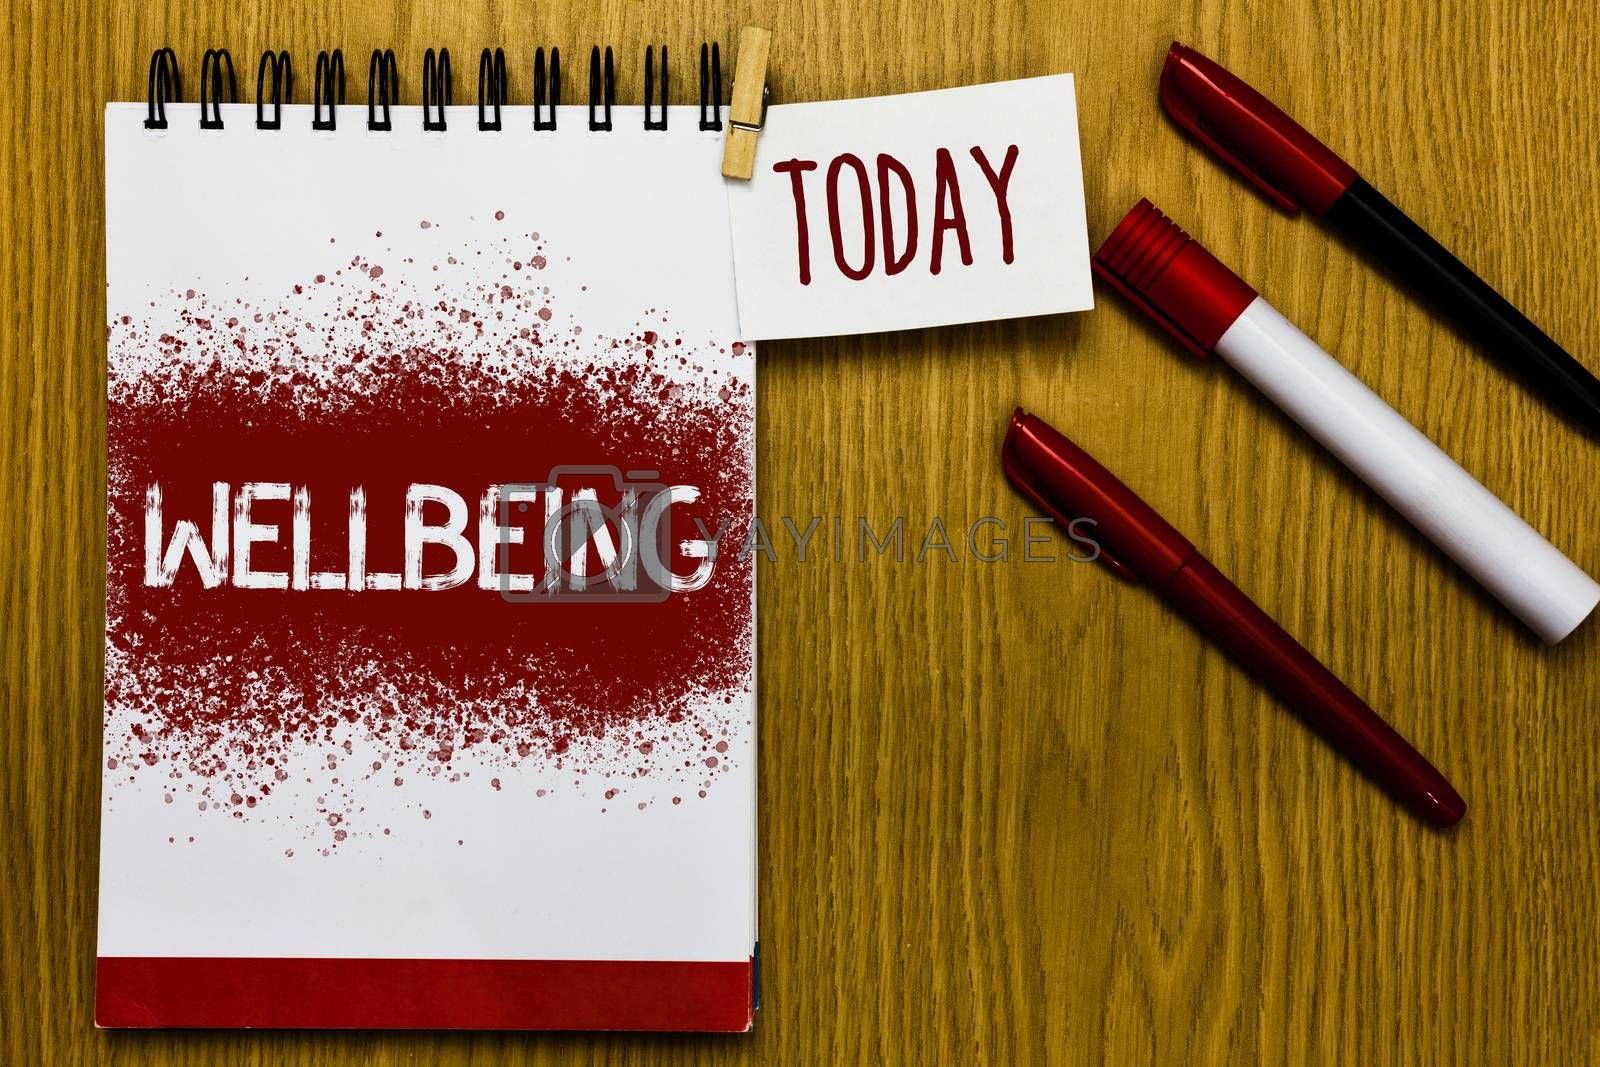 Text sign showing Wellbeing. Conceptual photo Healthy lifestyle conditions of people life work balance Reminder appointment daily note paper work book job list marker pens clip. by Artur Szczybylo